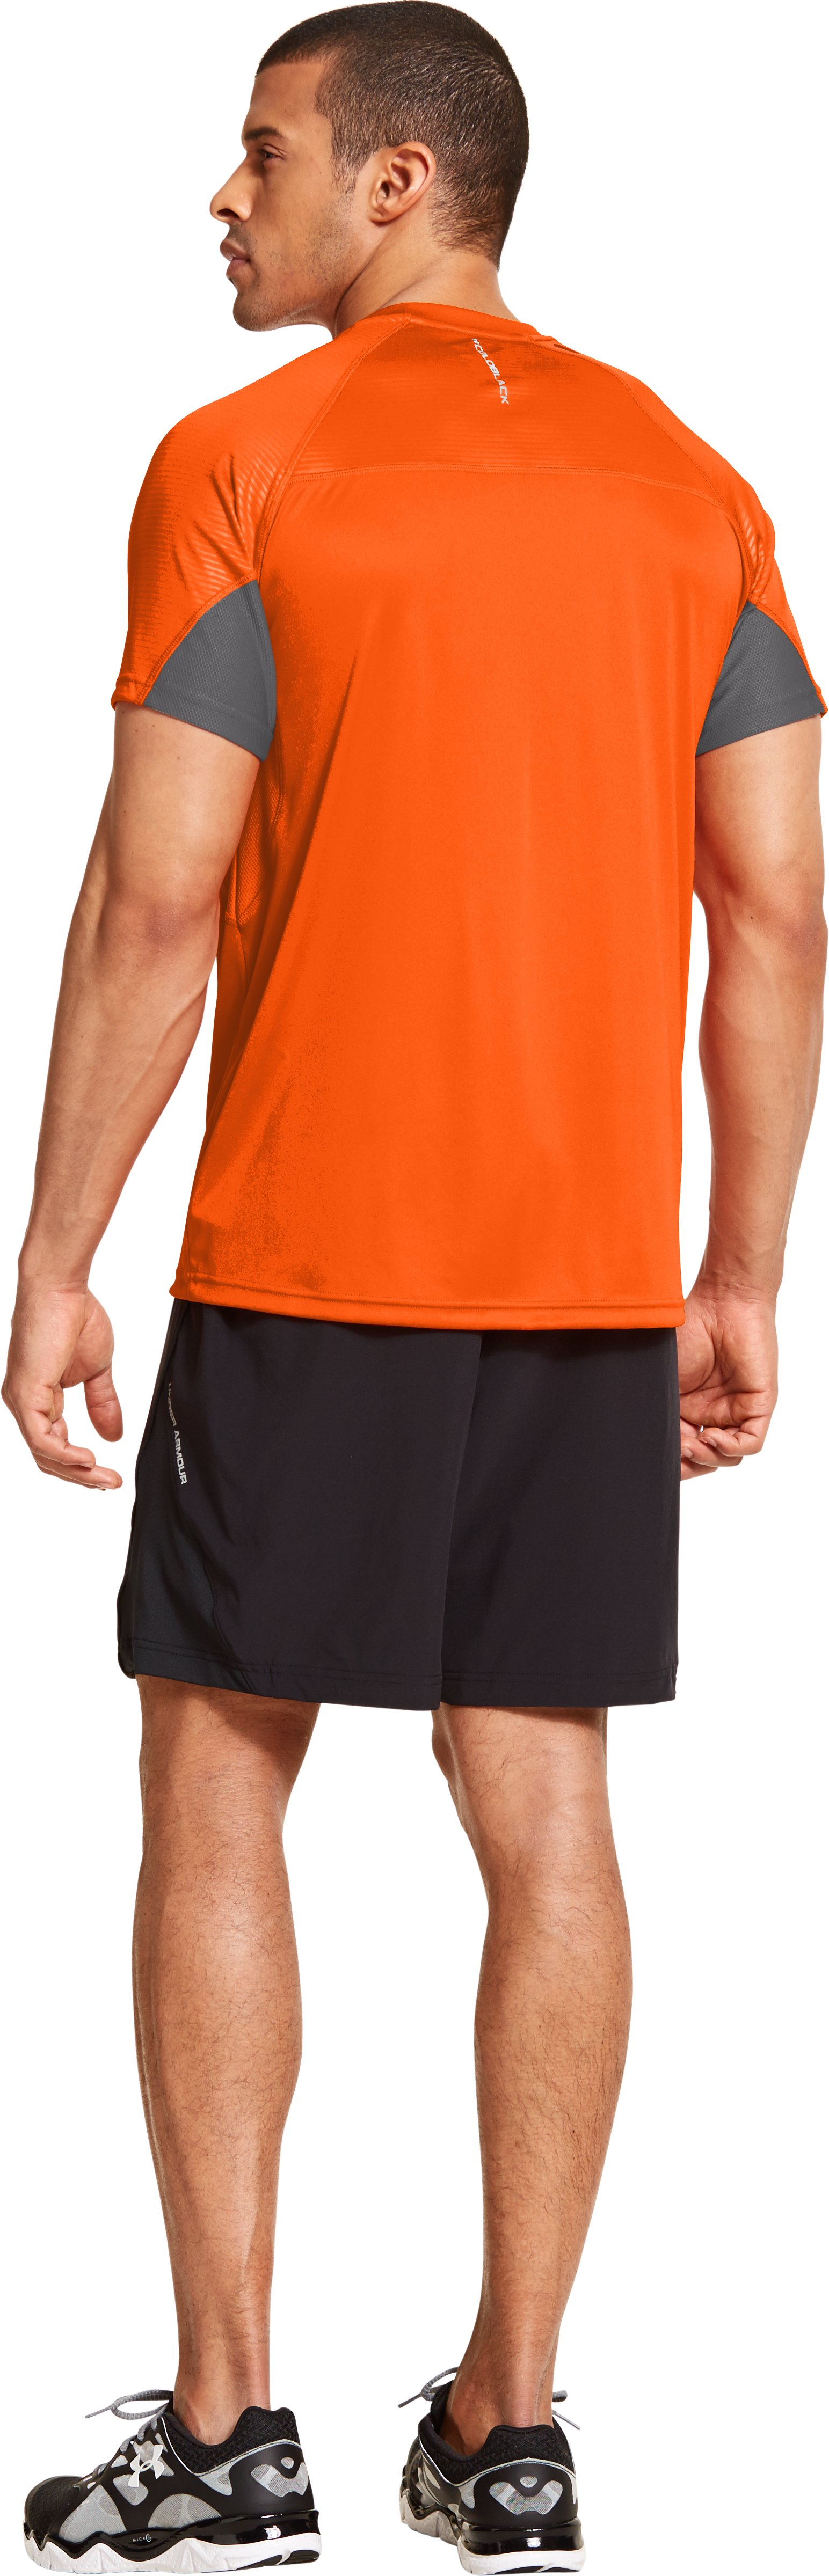 Men's coldblack® Run Short Sleeve, OUTRAGEOUS ORANGE, Back